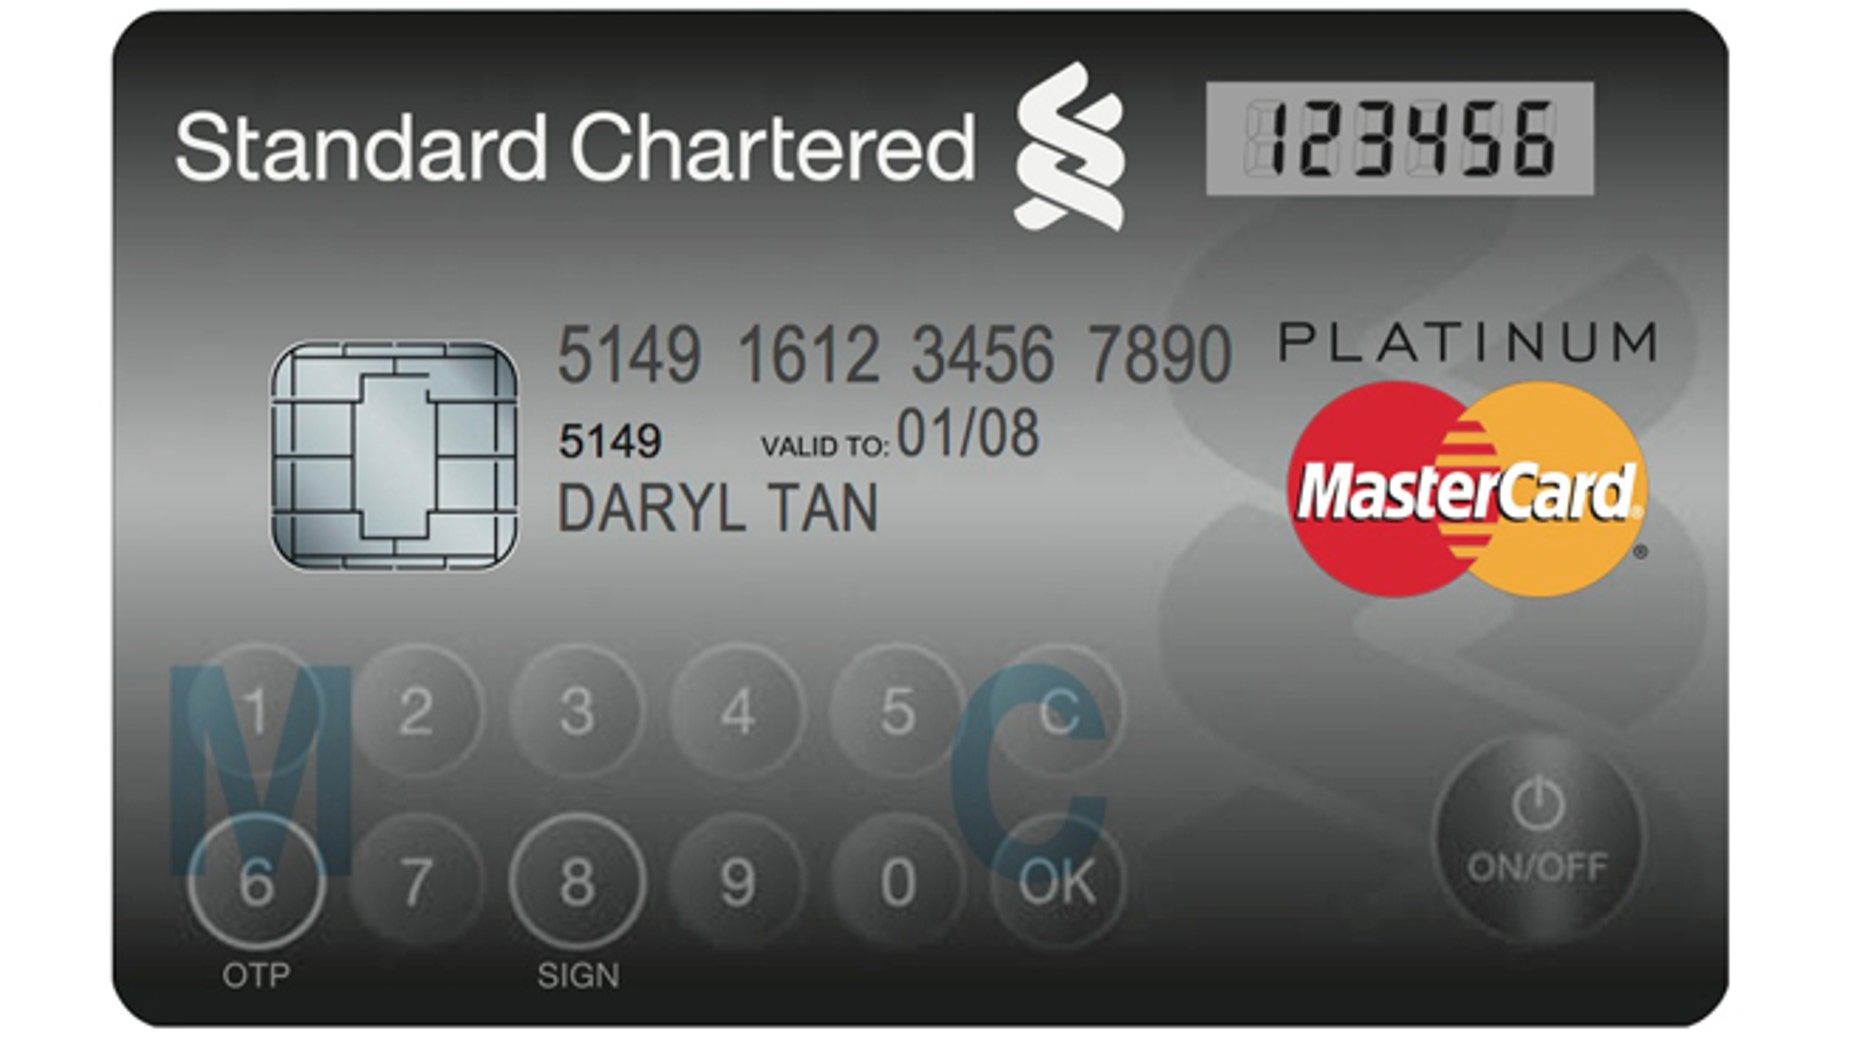 Nov. 6, 2012: The MasterCard Display Card, manufactured by NagraID Security, looks and functions almost exactly like a regular credit card but features an embedded LCD screen and touch-sensitive buttons.